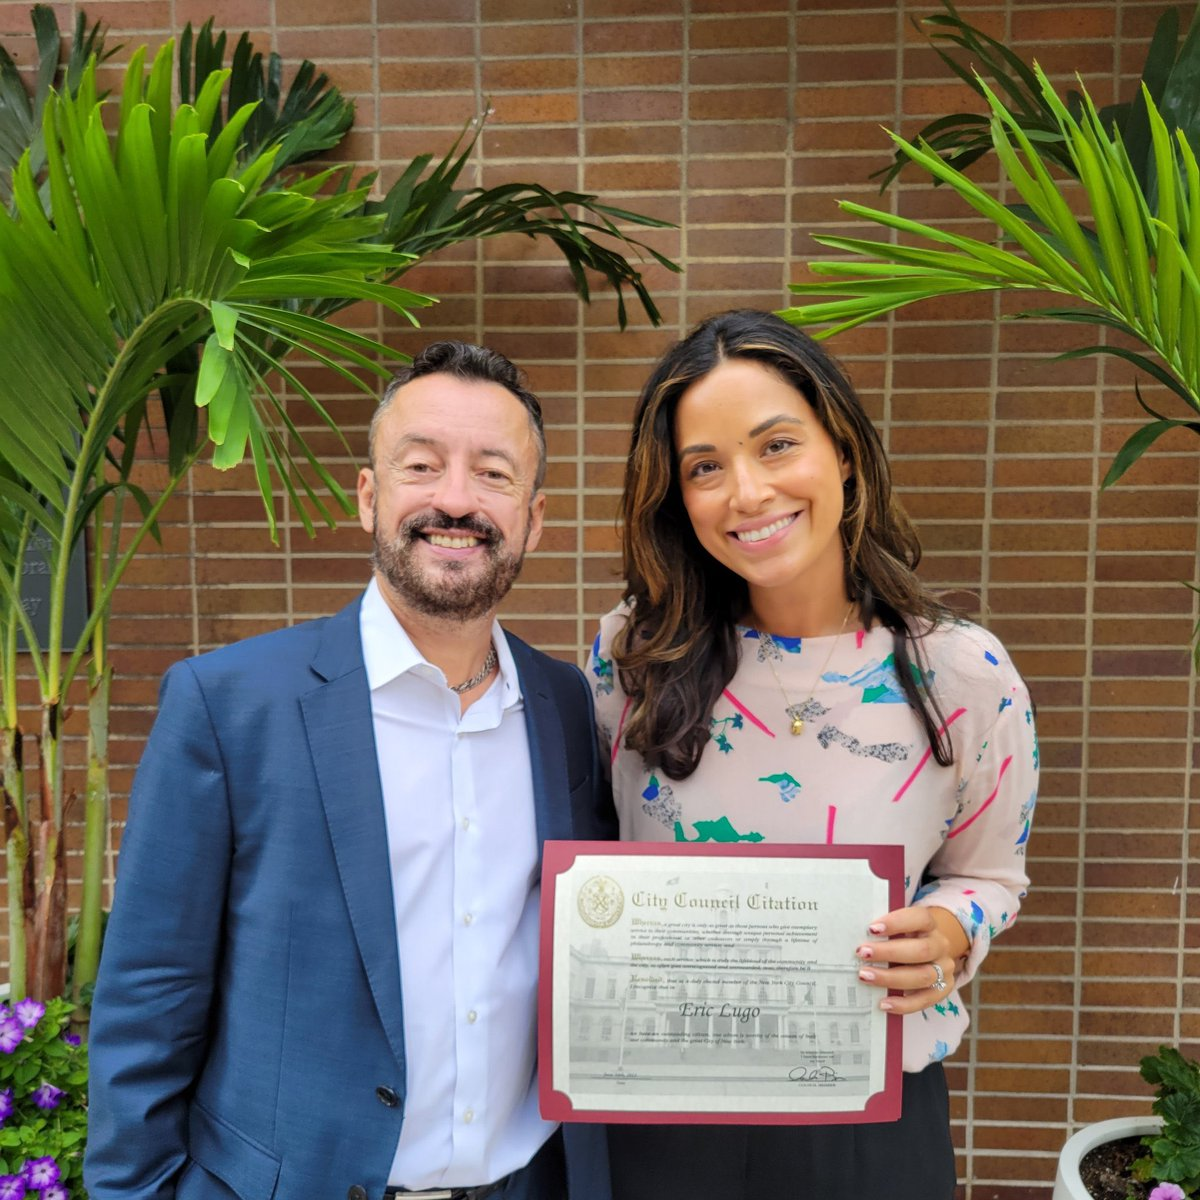 Had the absolute pleasure to present @EricLugo47 with a Council citation for his decades of service in government, activism and at @BaruchCollege. Excited for his next chapter!